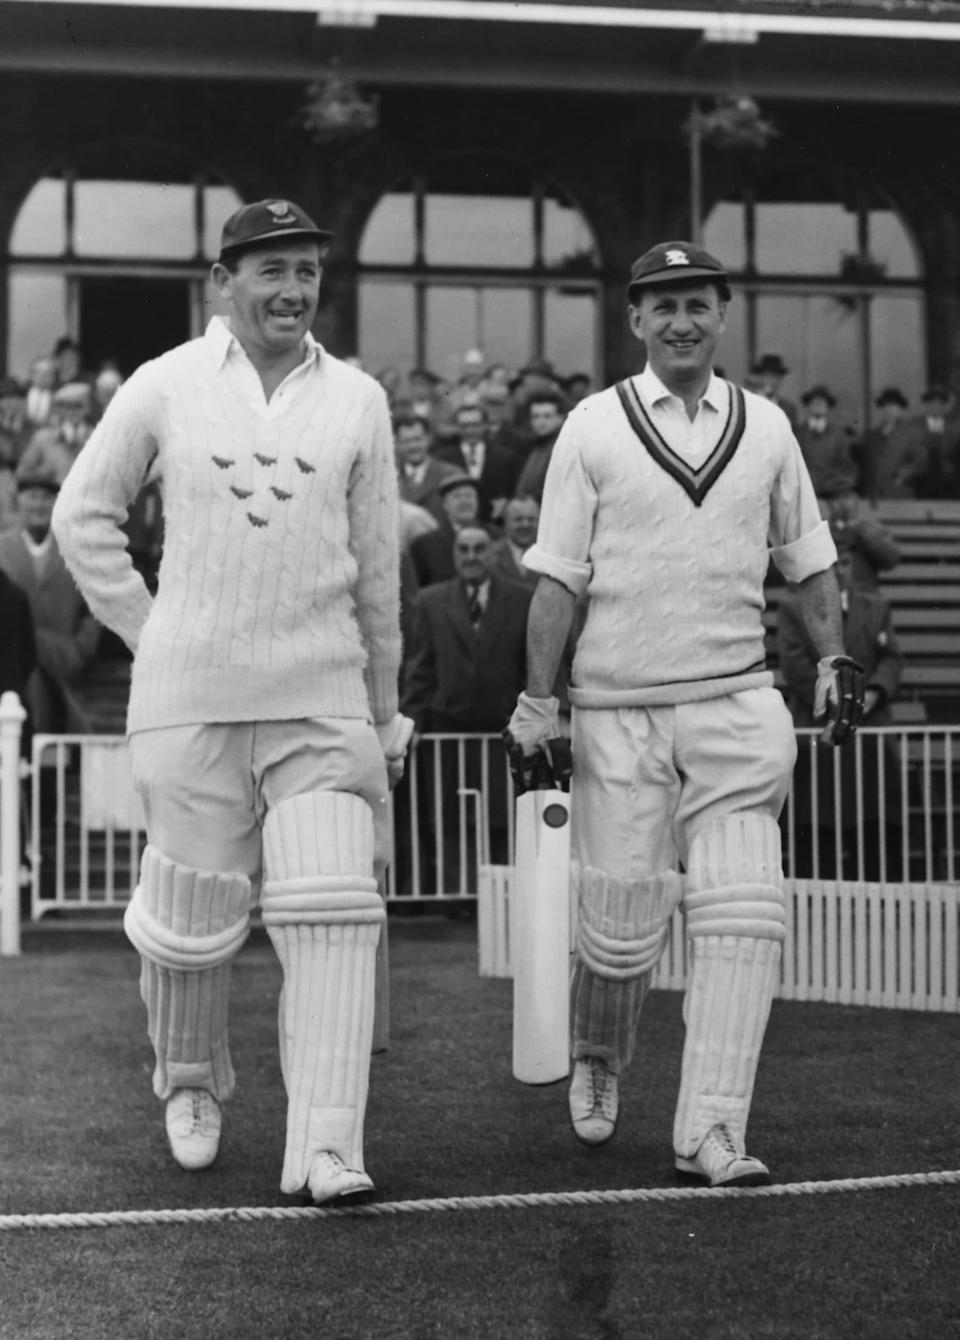 Smith, left, leaves the pavilion with Sir Len Hutton to open the innings for MCC against Lancashire in 1957 - Paul Popper/Popperfoto